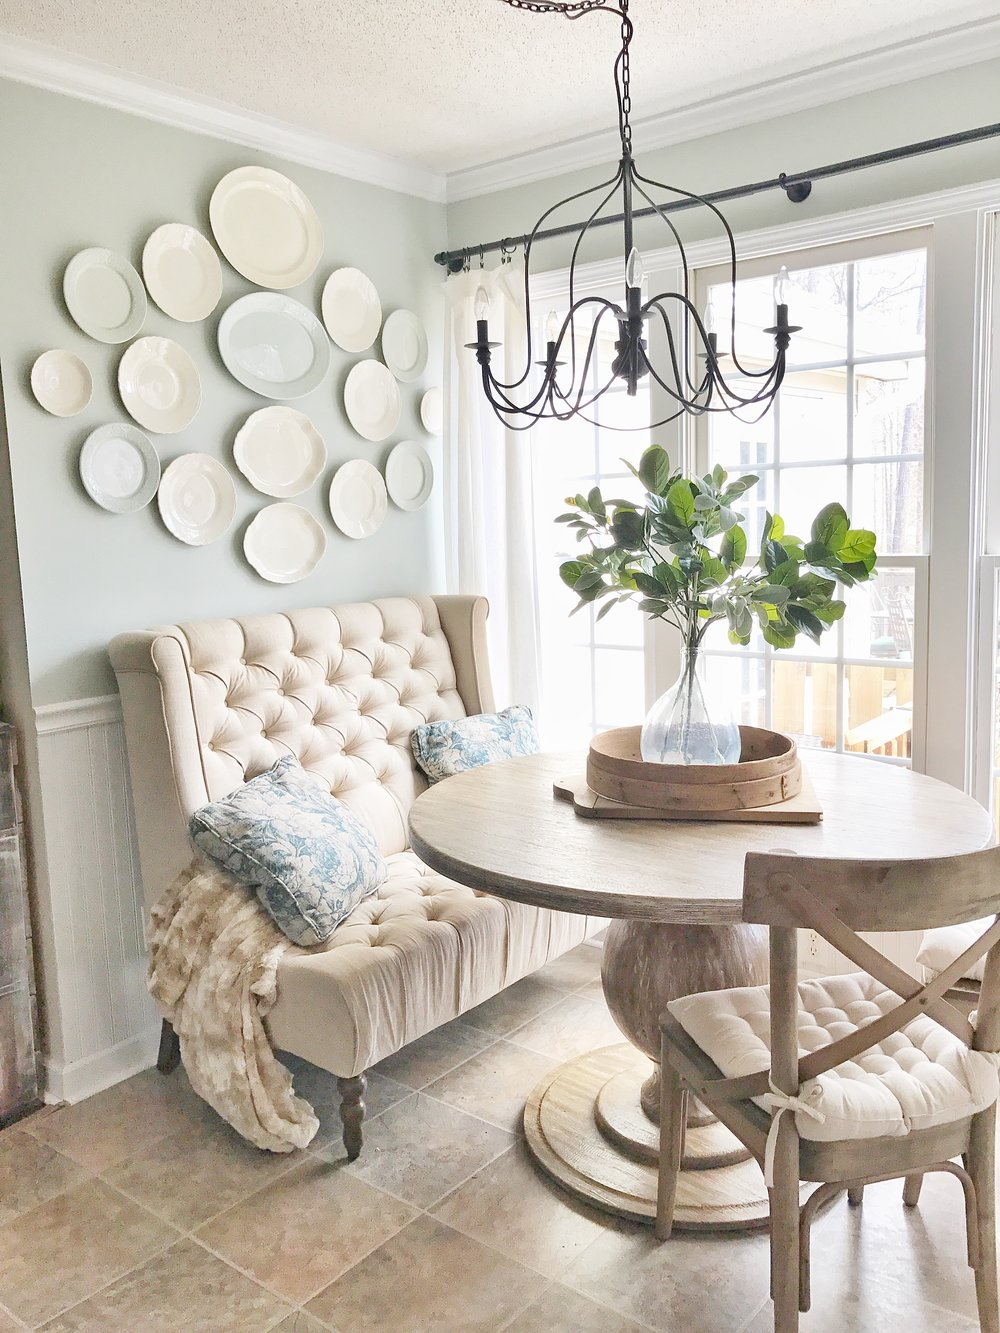 Home Tour  Farmhouse Style Breakfast Nook With A White Plate Wall By Plum  Pretty Decor